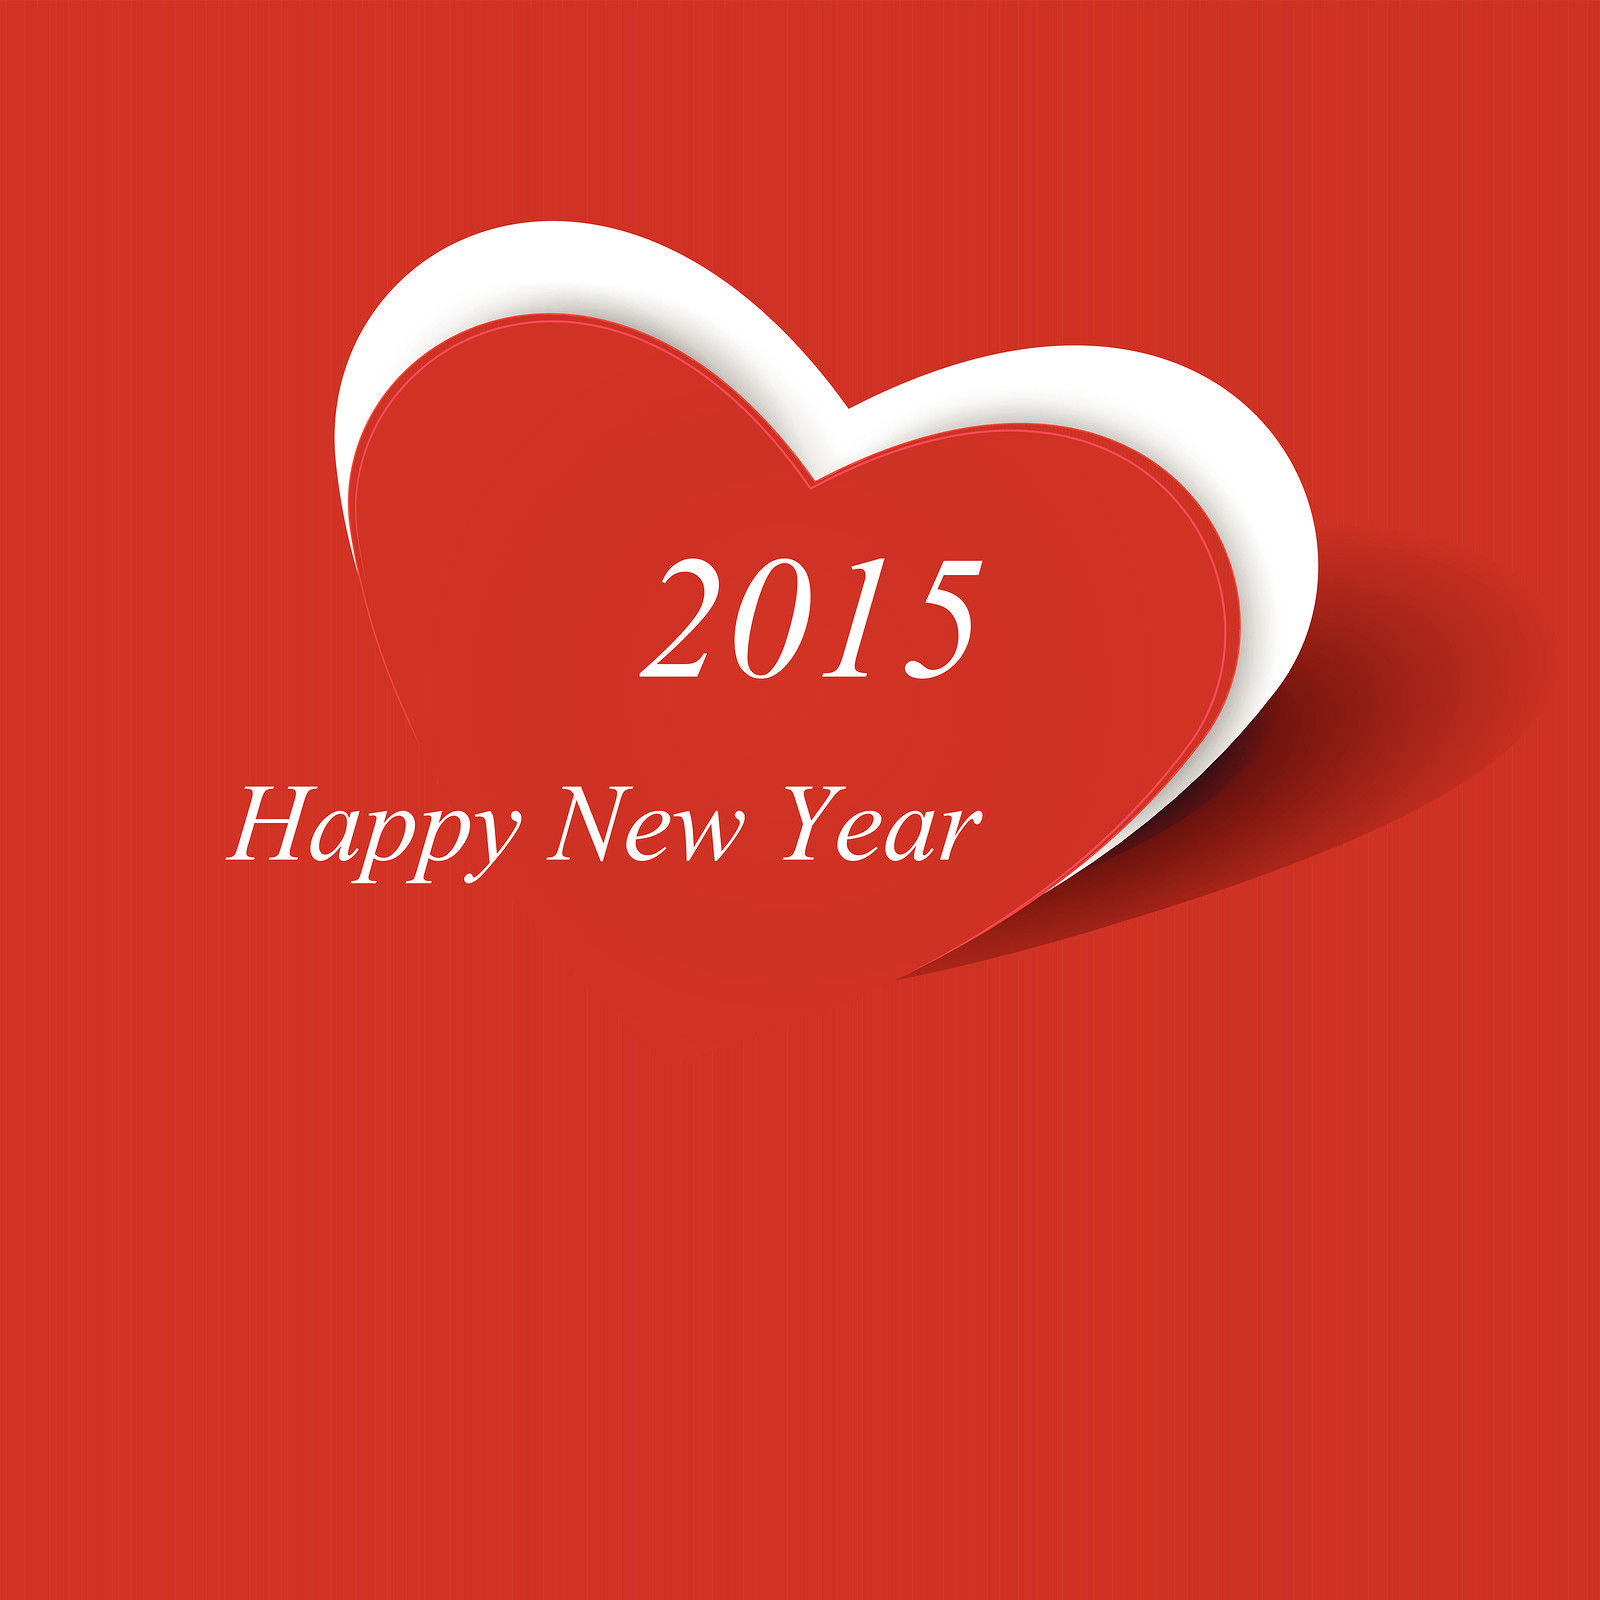 Love Wallpaper Of 2015 : New Love Wallpapers 2015 - Wallpaper cave